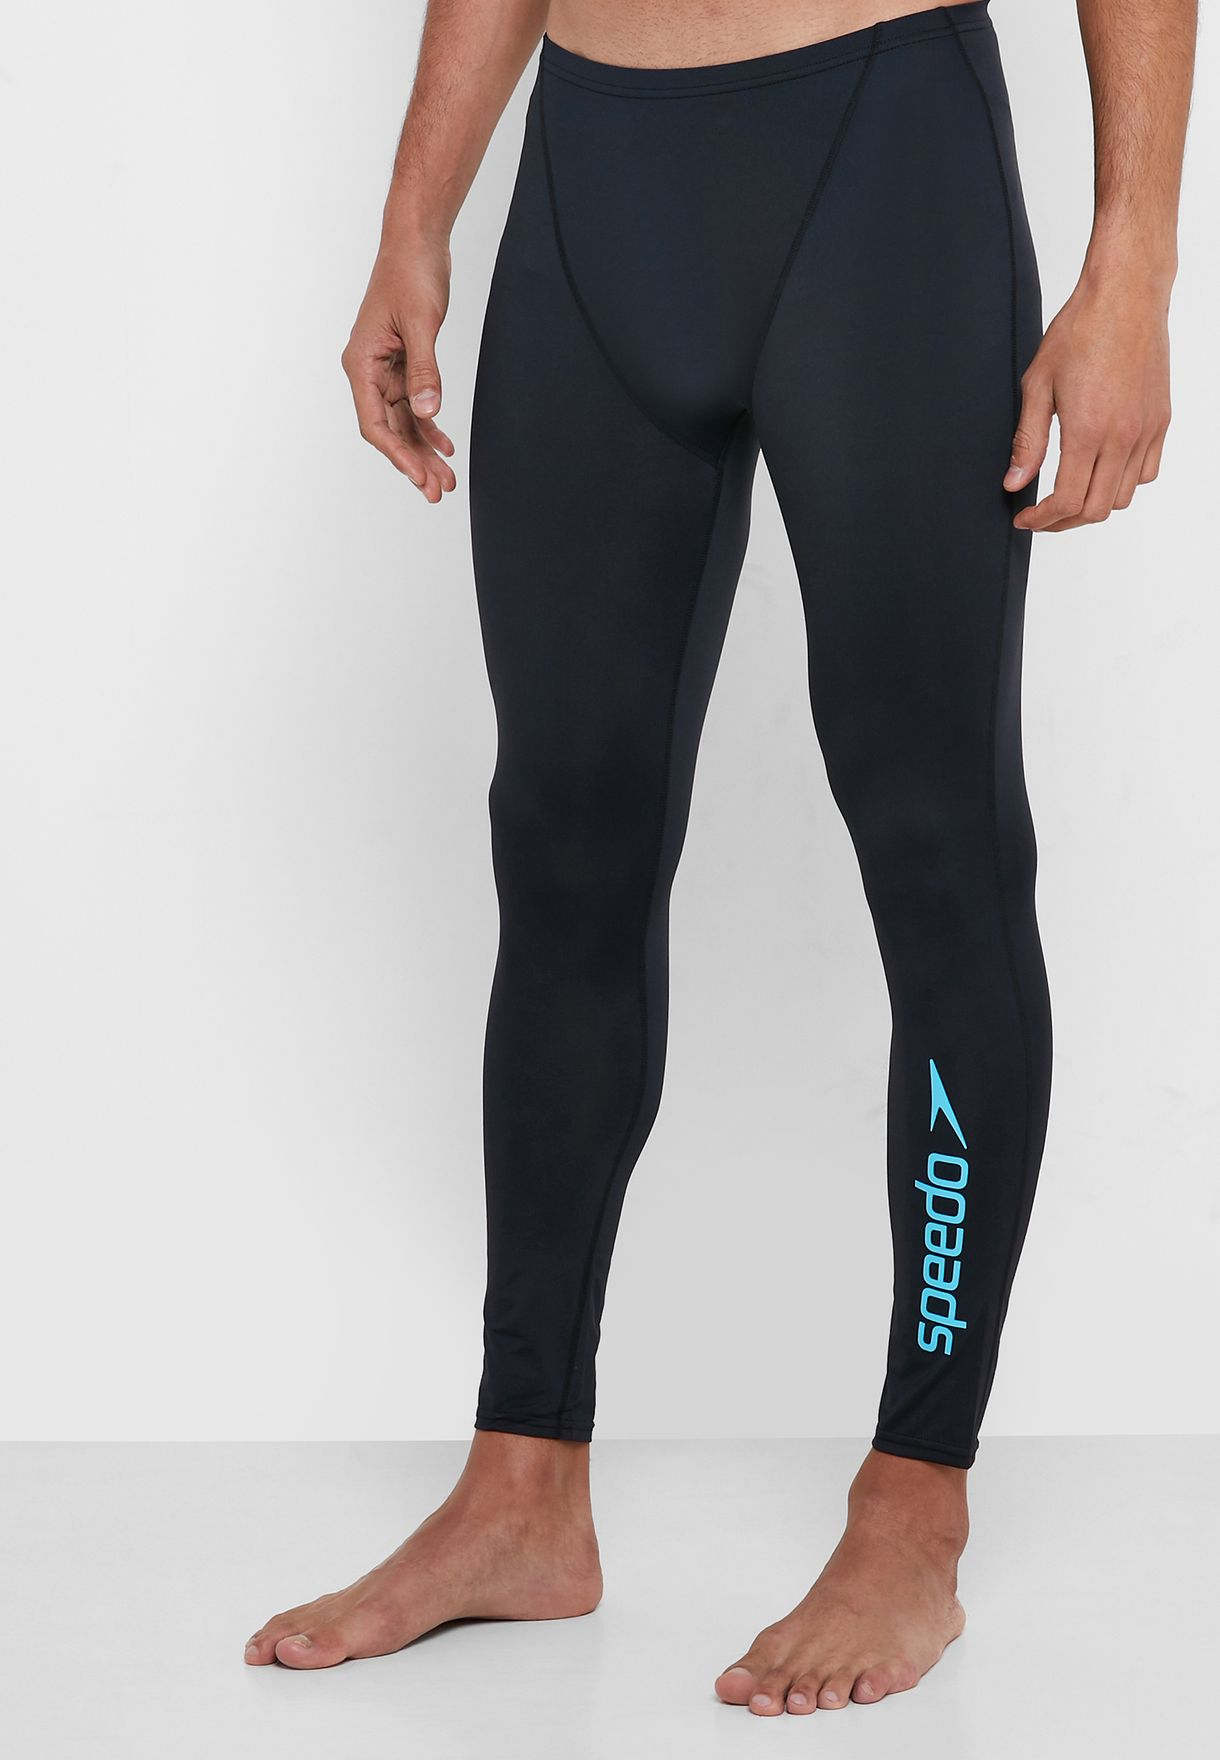 Delight Swim Pants